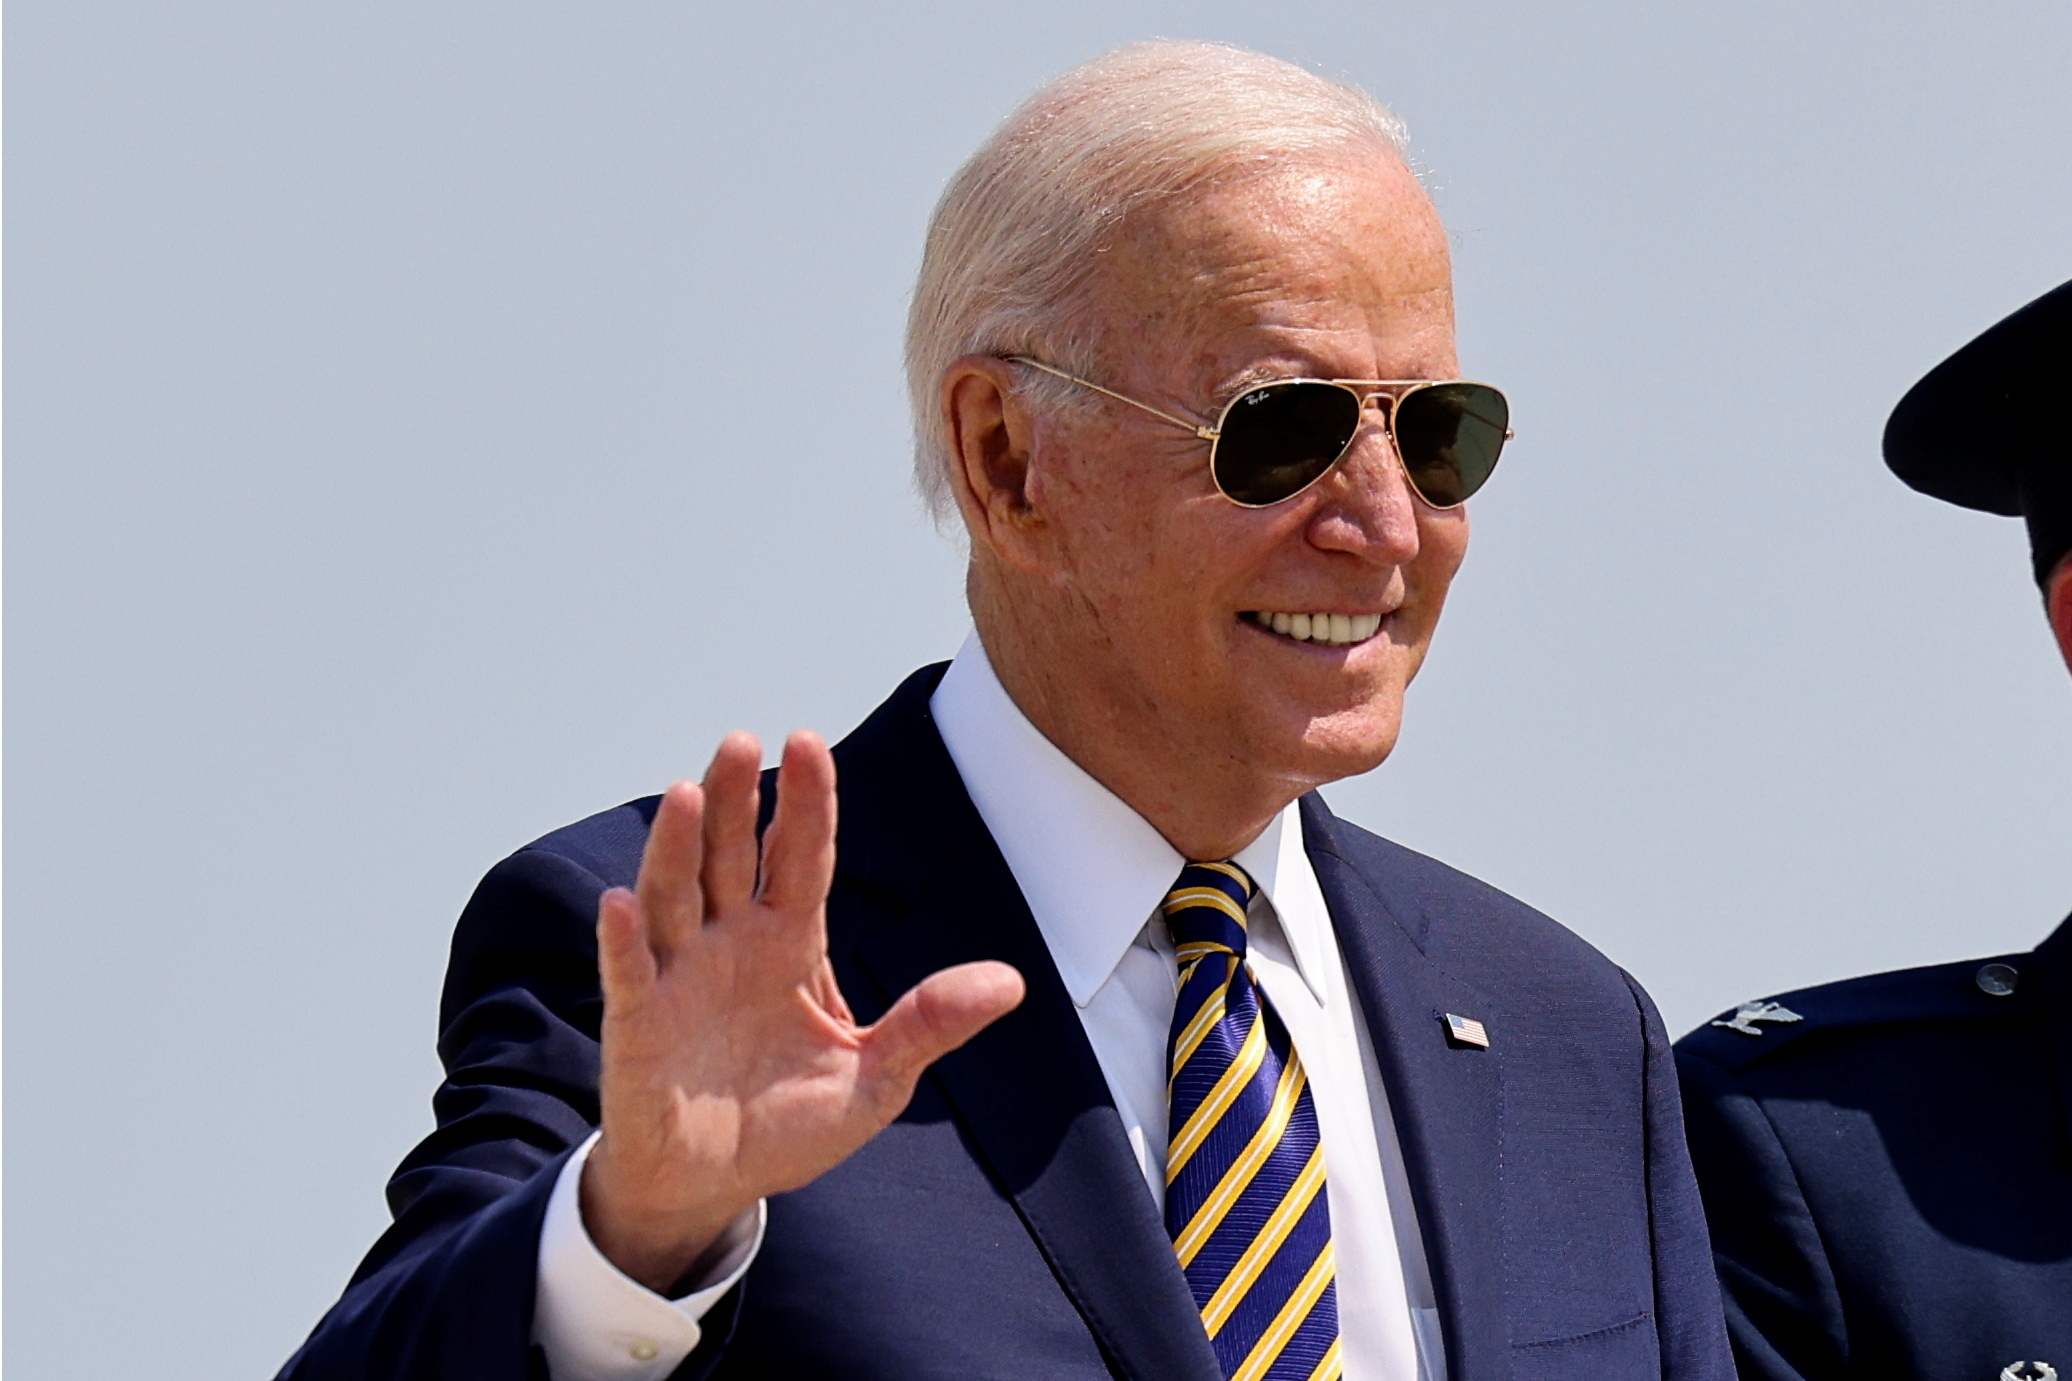 U.S. President Joe Biden waves while boarding Air Force One as he departs Washington for travel to Pennsylvania at Joint Base Andrews, Maryland, U.S., July 28, 2021. REUTERS/Evelyn Hockstein